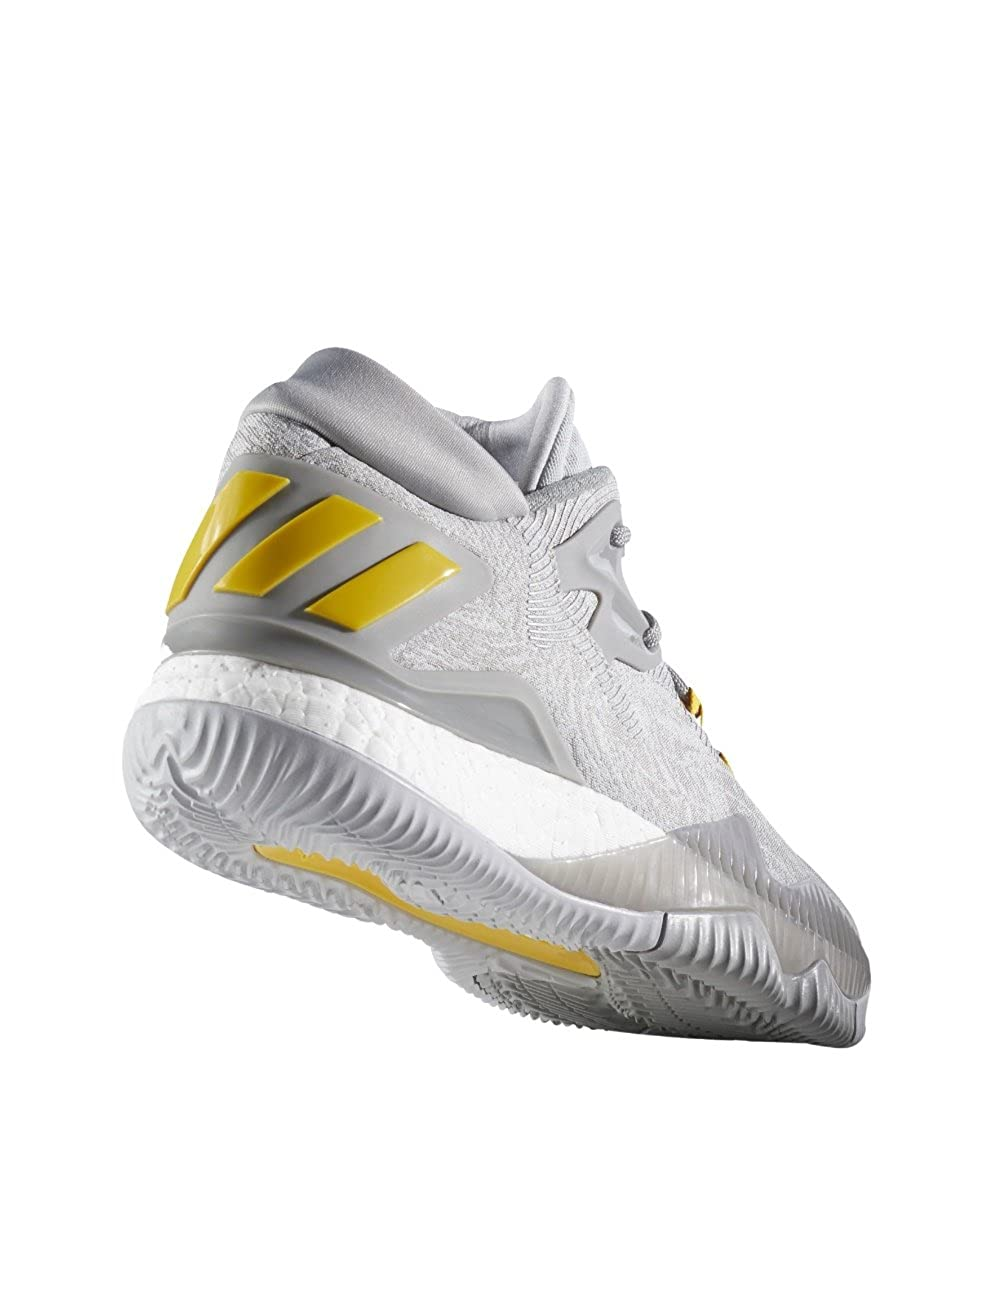 Adidas - - - Crazylight Boost Low 2016, Scarpe Sportive Uomo 5c52a1